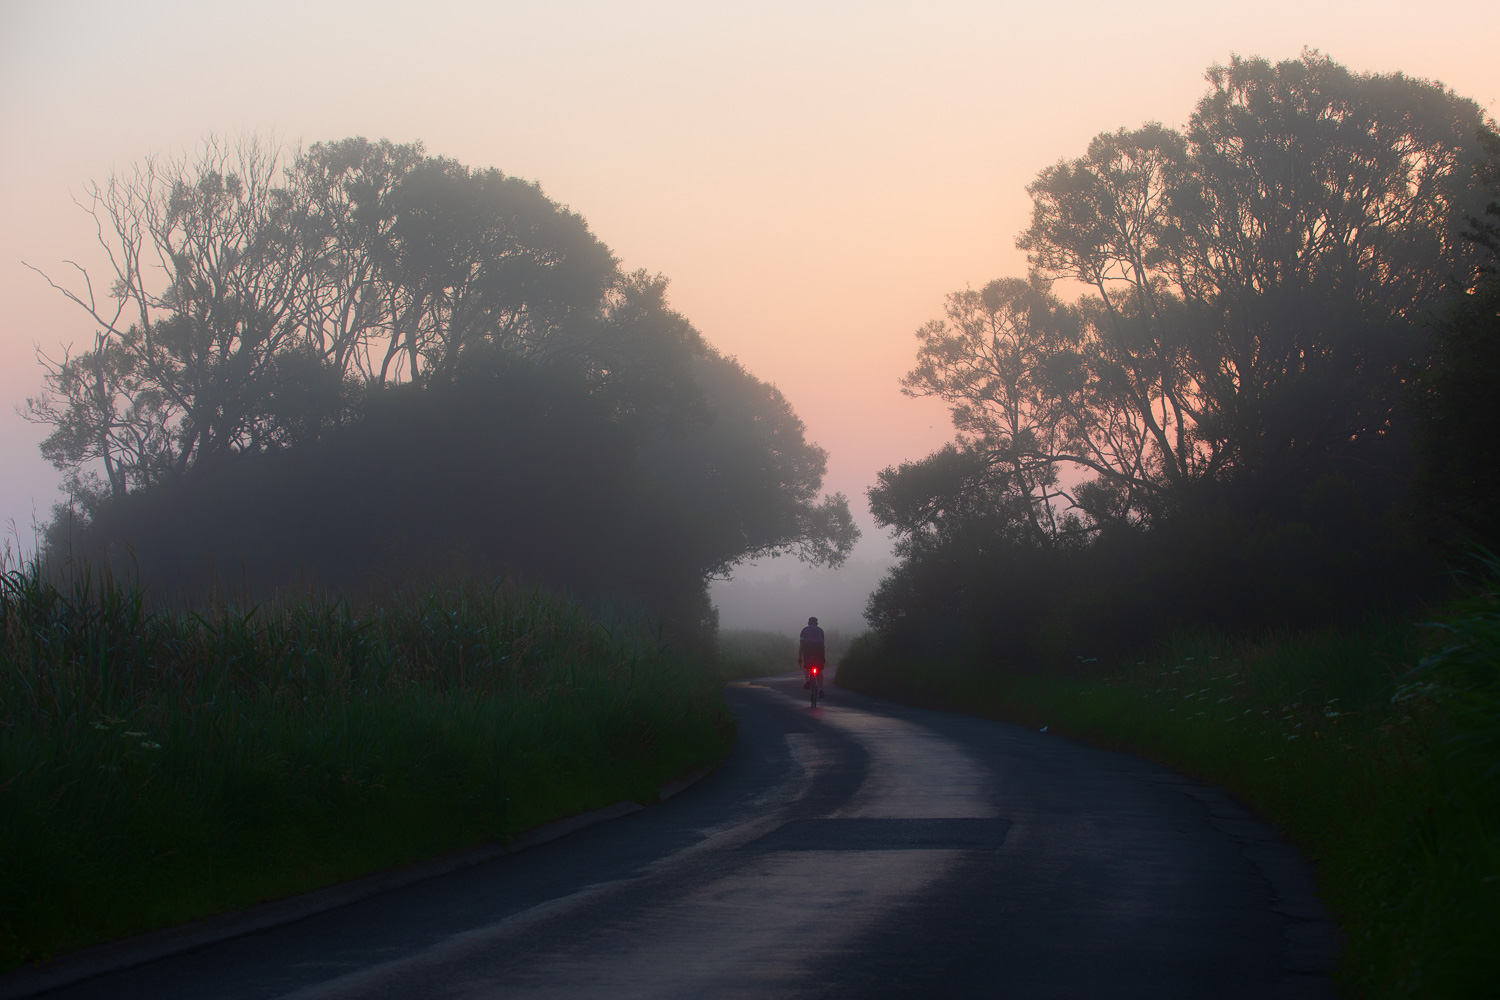 Cyclist with red taillight on misty country lane at dawn